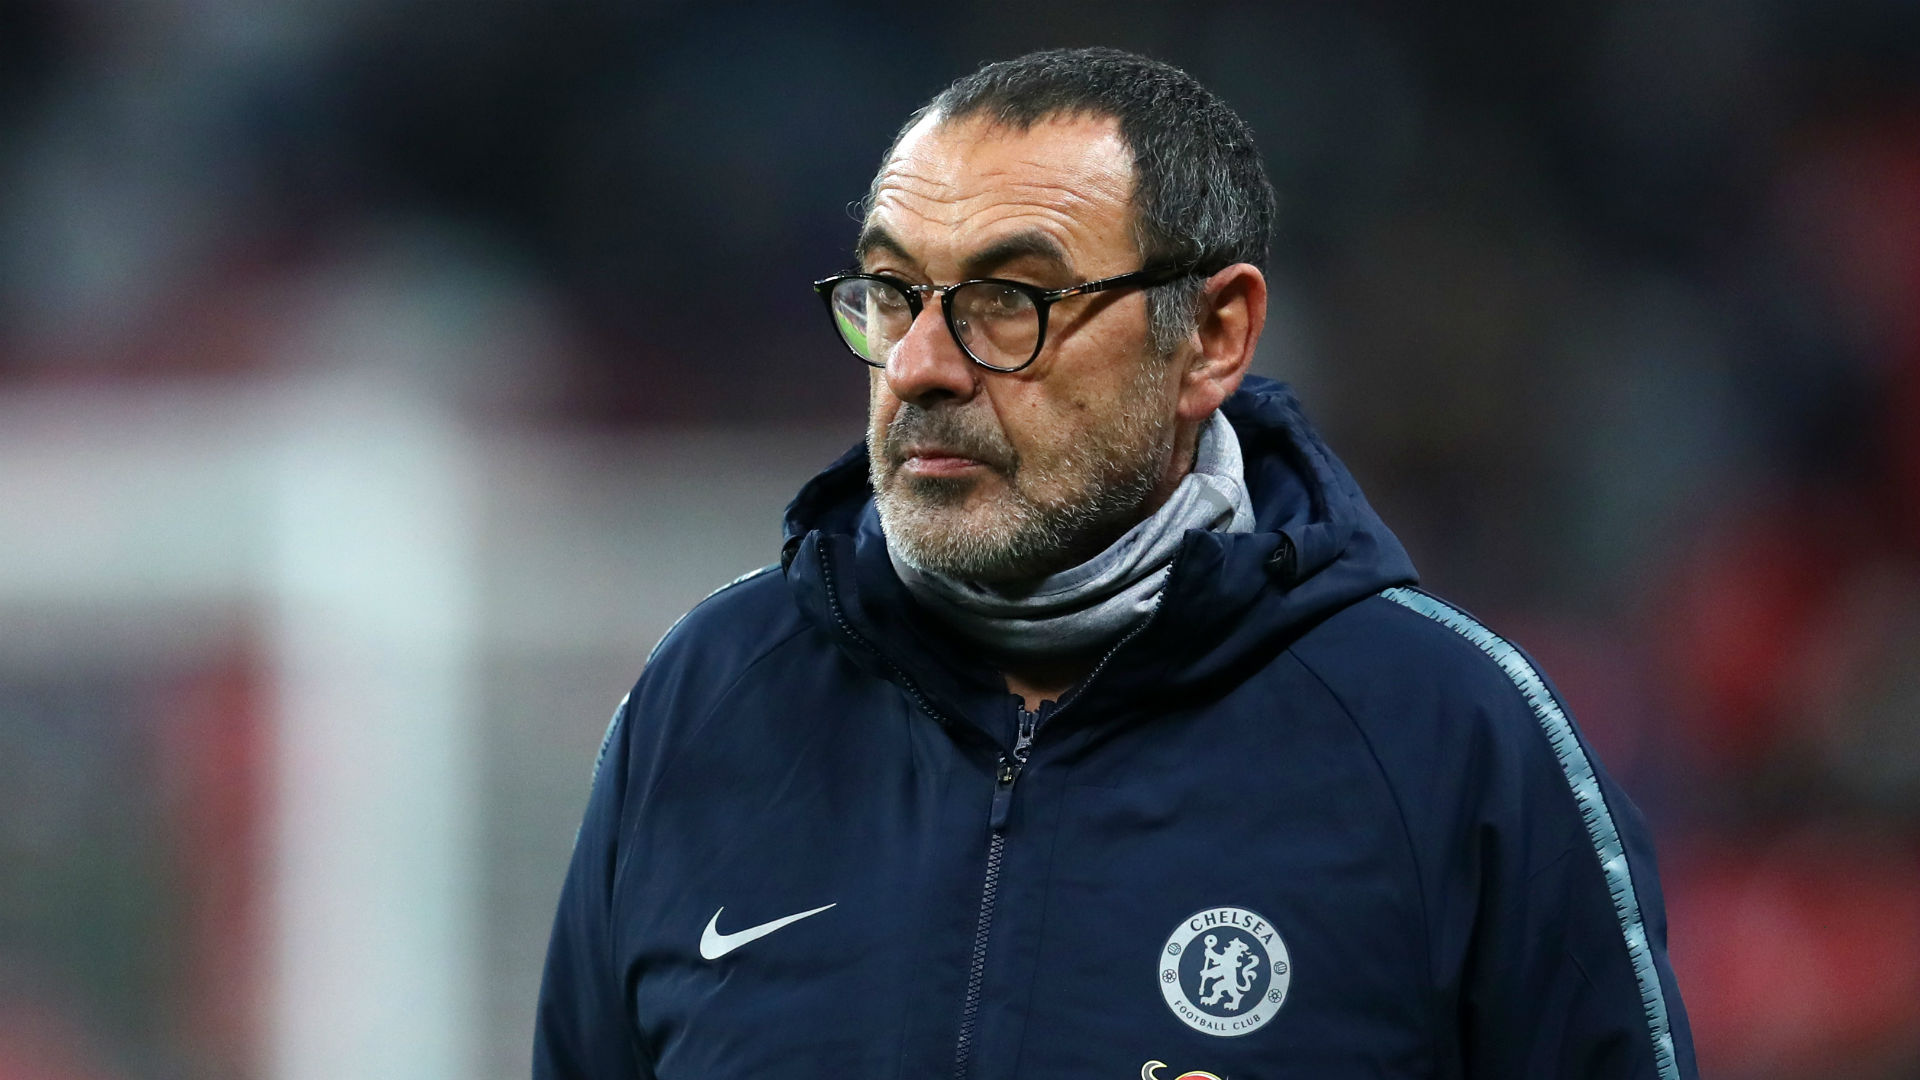 Sarri calls Higuain after Chelsea loan deal was moved to next week